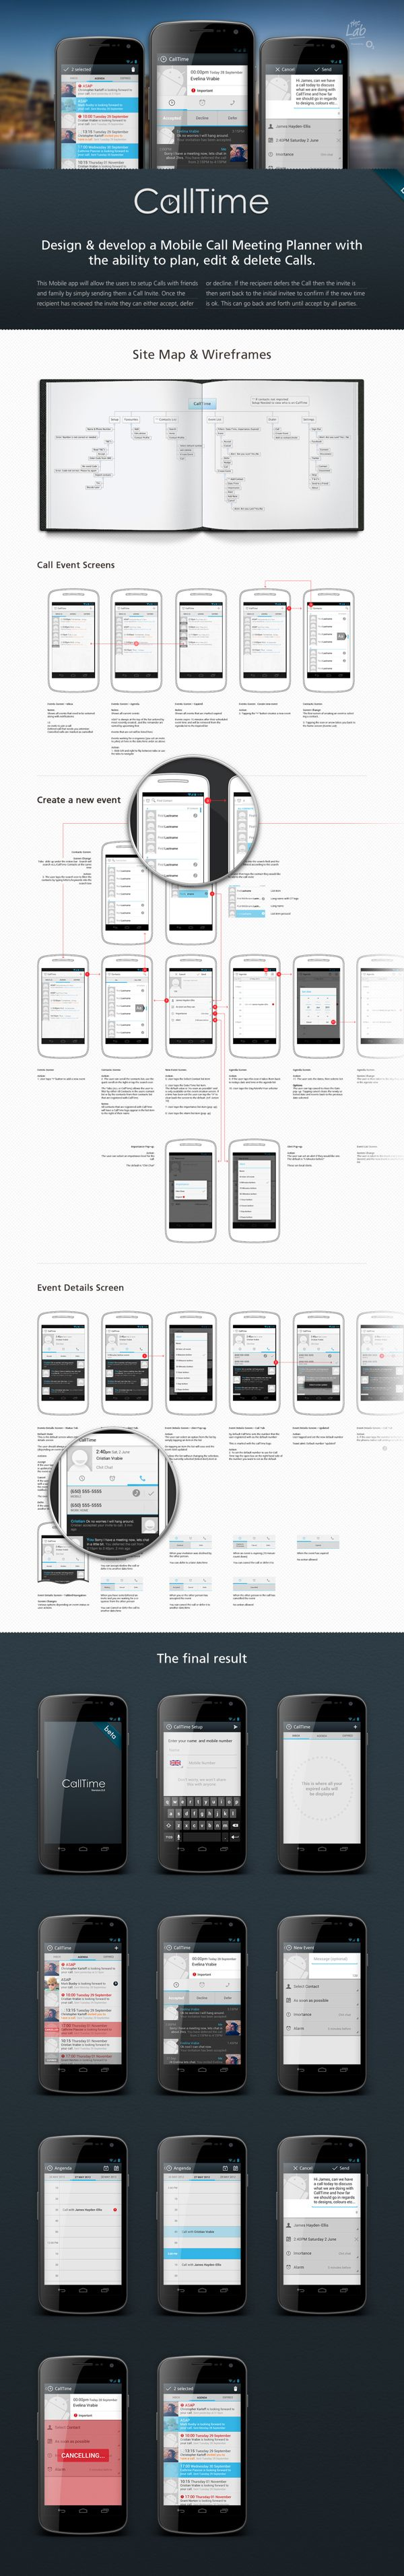 Design an app Android